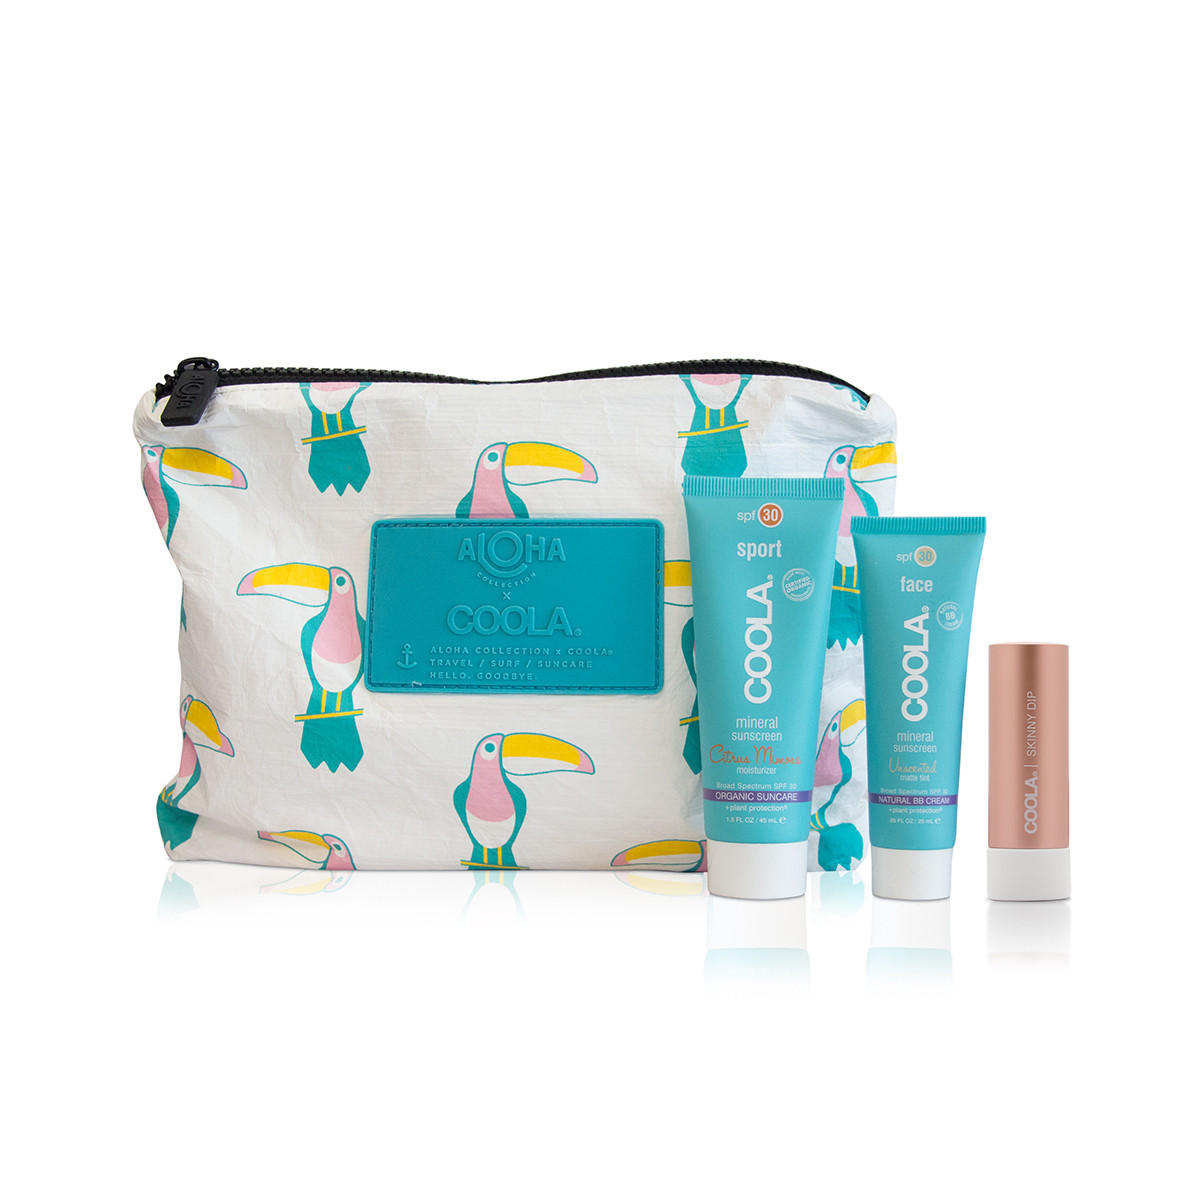 COOLA - Our quest is to spoil your sometimes finicky, always worthy skin with the most pure, eco-conscious products possible. After all, you may obsess over what you put in your body, but think about what you put on it. We thought about it, quite a bit actually, and we consciously chose to develop our line using as many ingredients as possible that are natural, organic, sustainable and locally sourced, much like the foods we prefer to eat